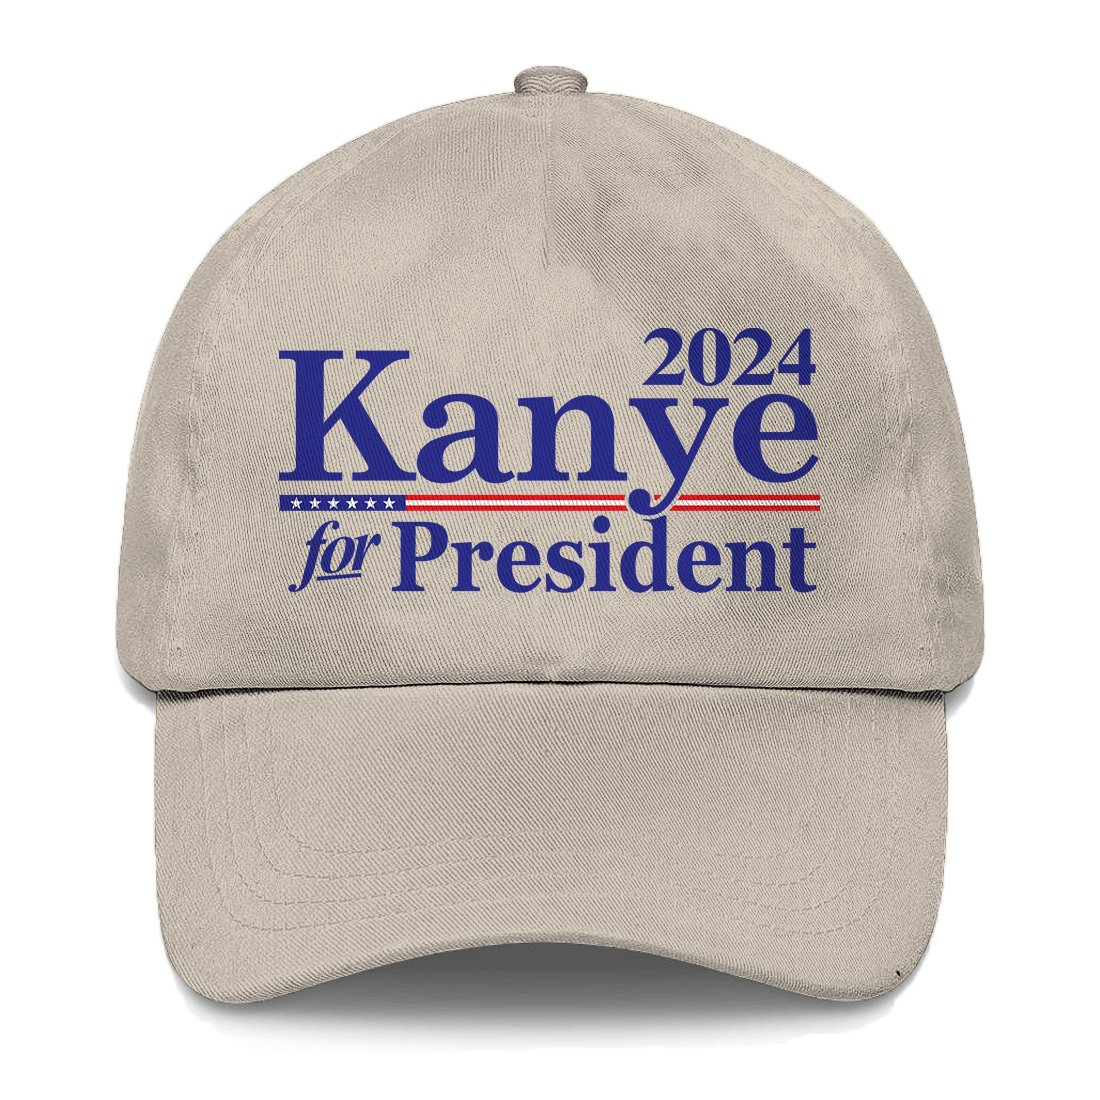 Tcombo Kanye for President 2024 Dad Hat (Stone) by Tcombo (Image #1)